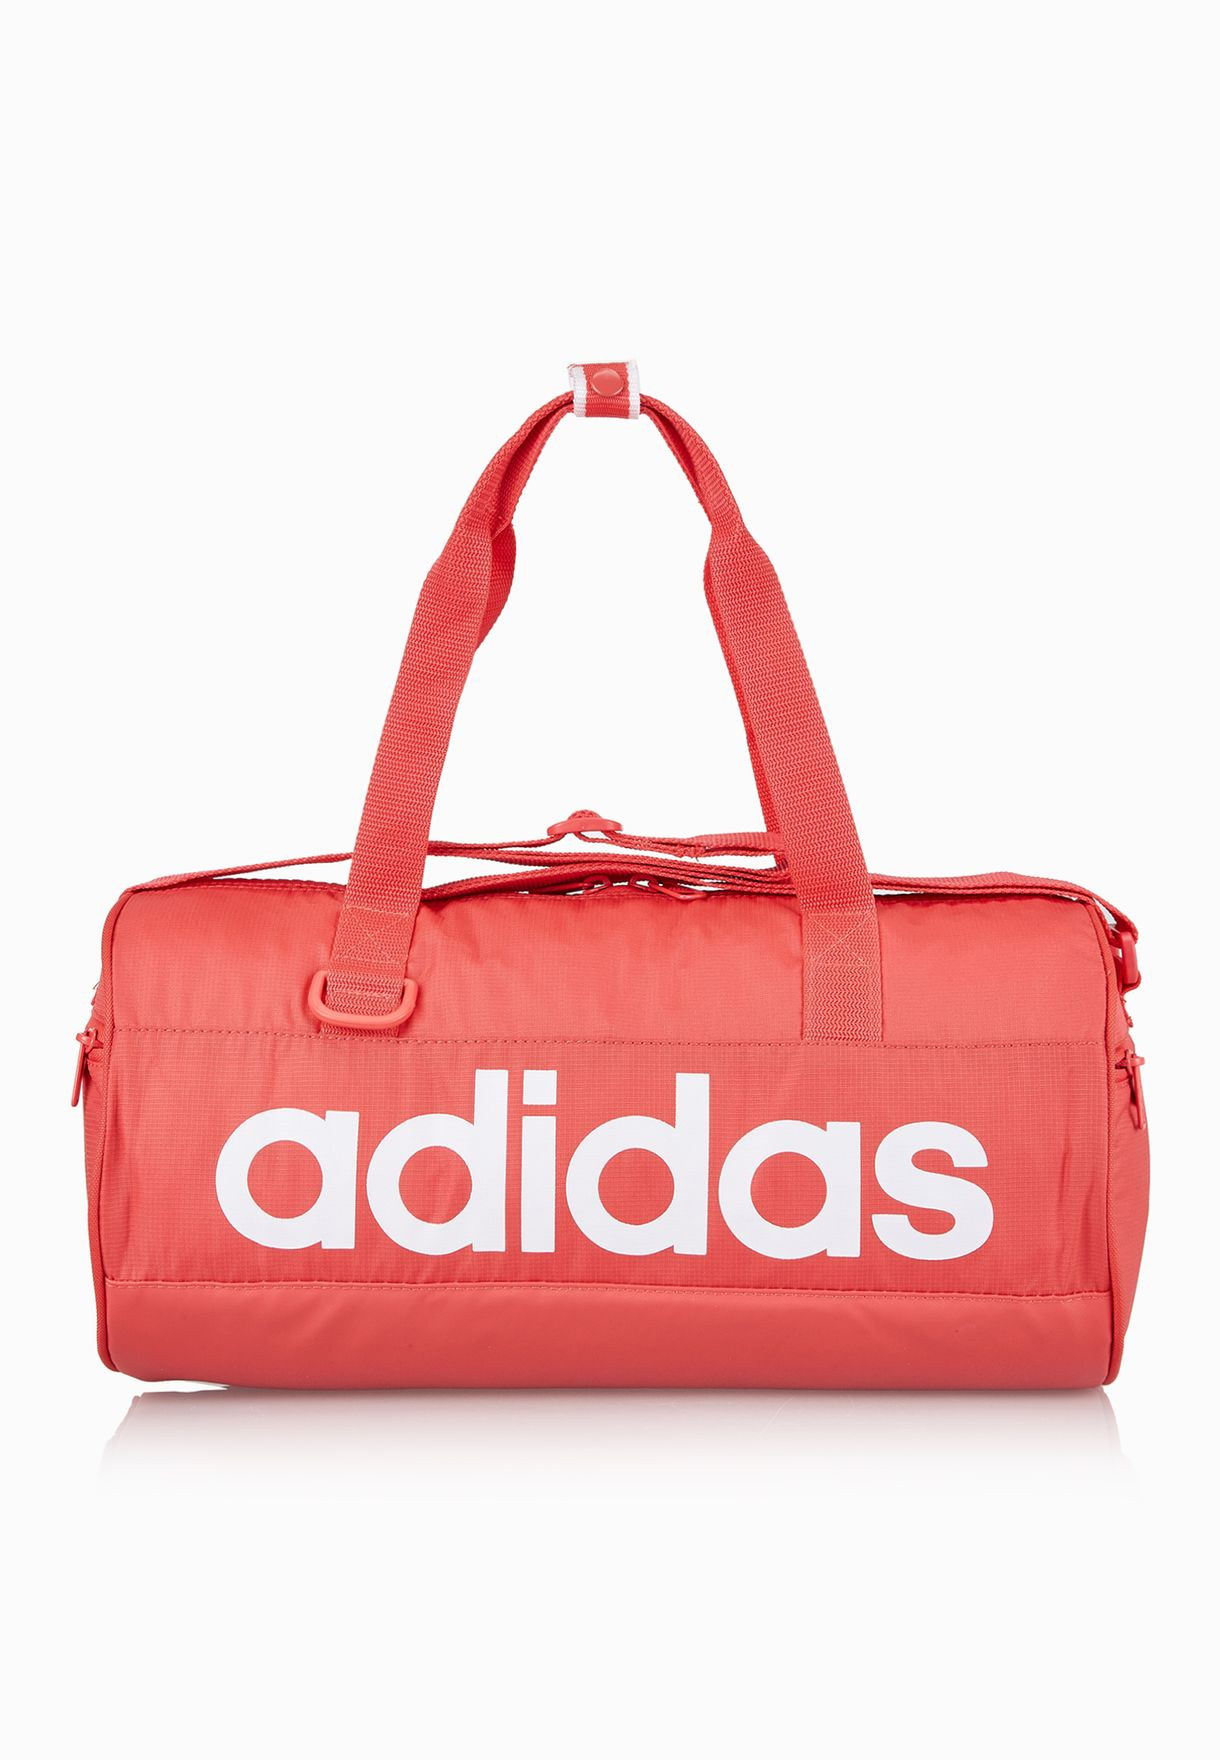 e16ceb32839c Shop adidas pink Extra Small Linear Performance Travel Bag AY5203 for Women  in Qatar - AD476AC58BEZ